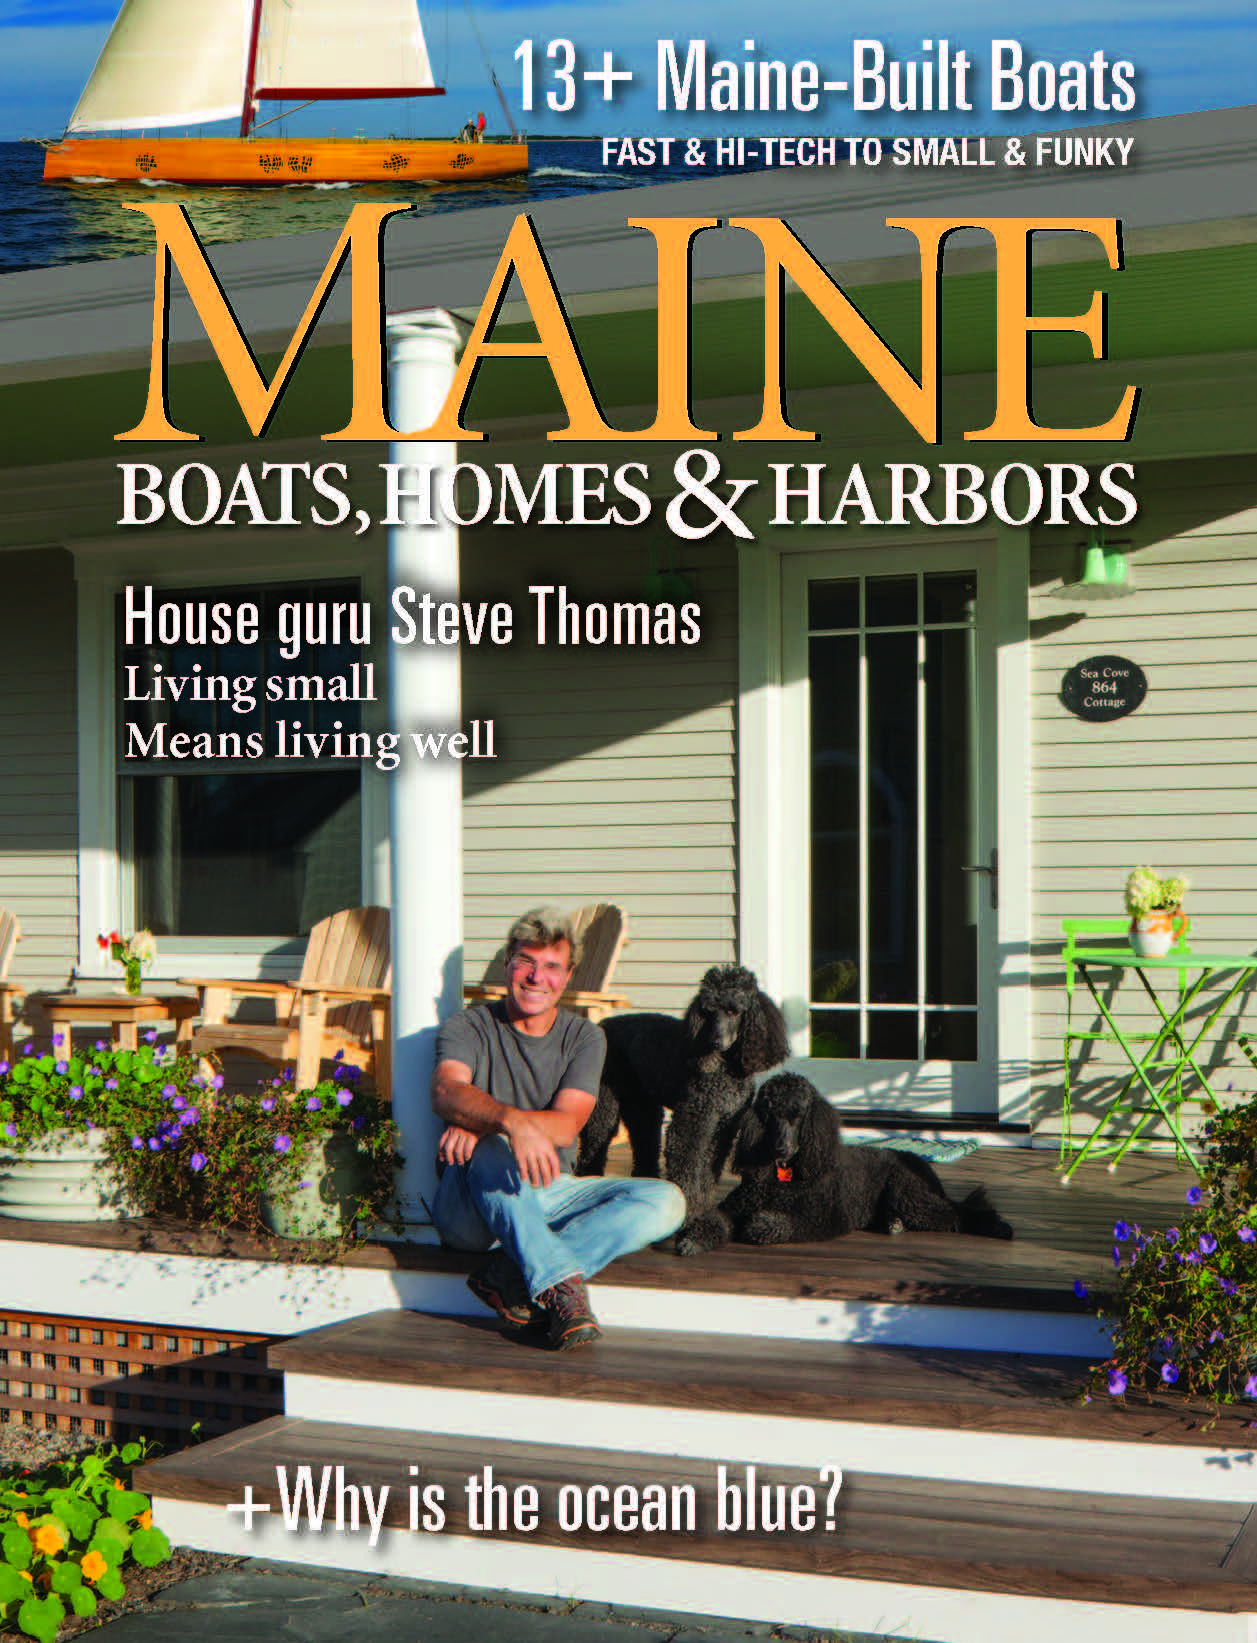 Maine Boats & Hbrs copy_Page_1.jpg